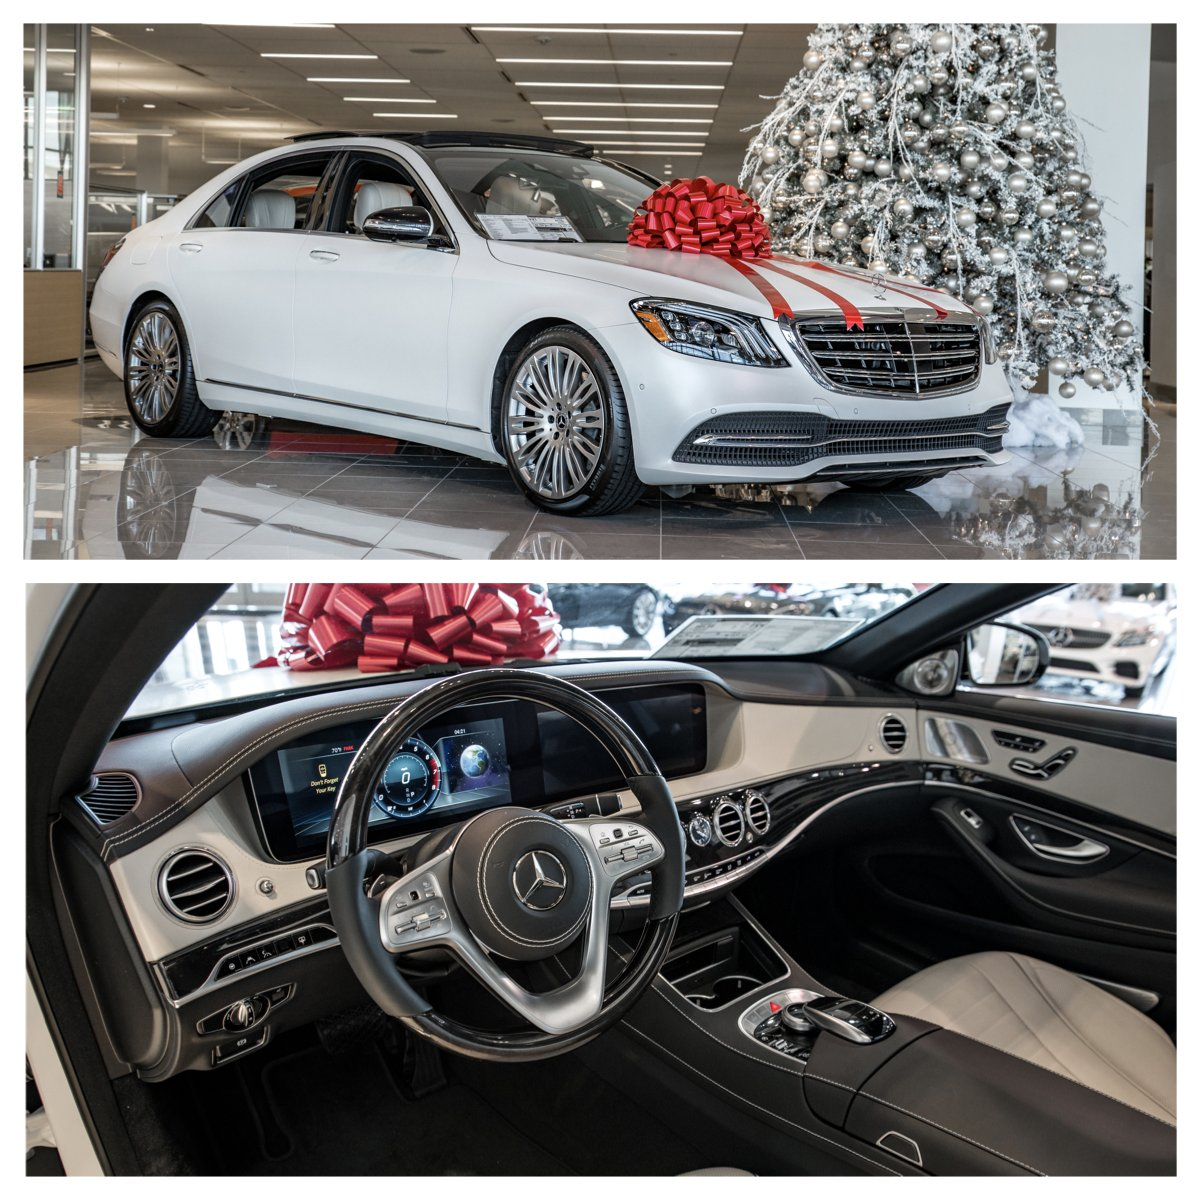 Mercedes Benz Plano >> Mercedes Benz Plano On Twitter As 2018 Comes To A Close